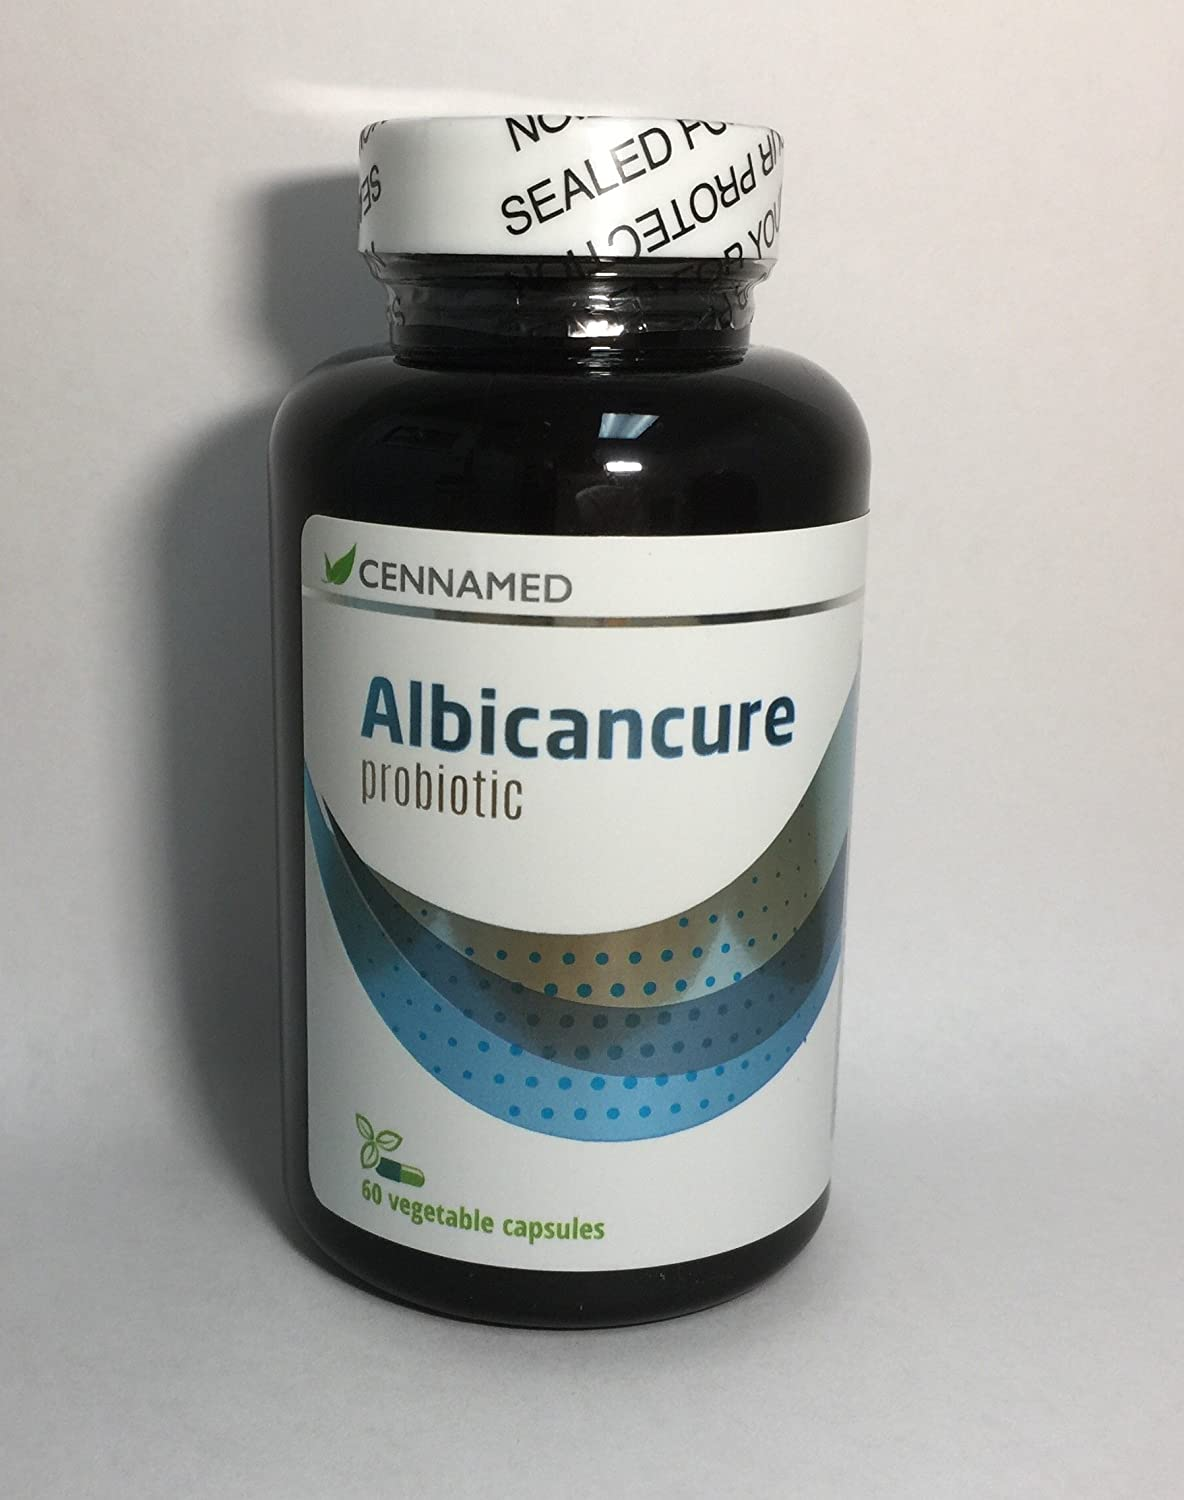 Amazon.com: albicancure Probiotic: Health & Personal Care